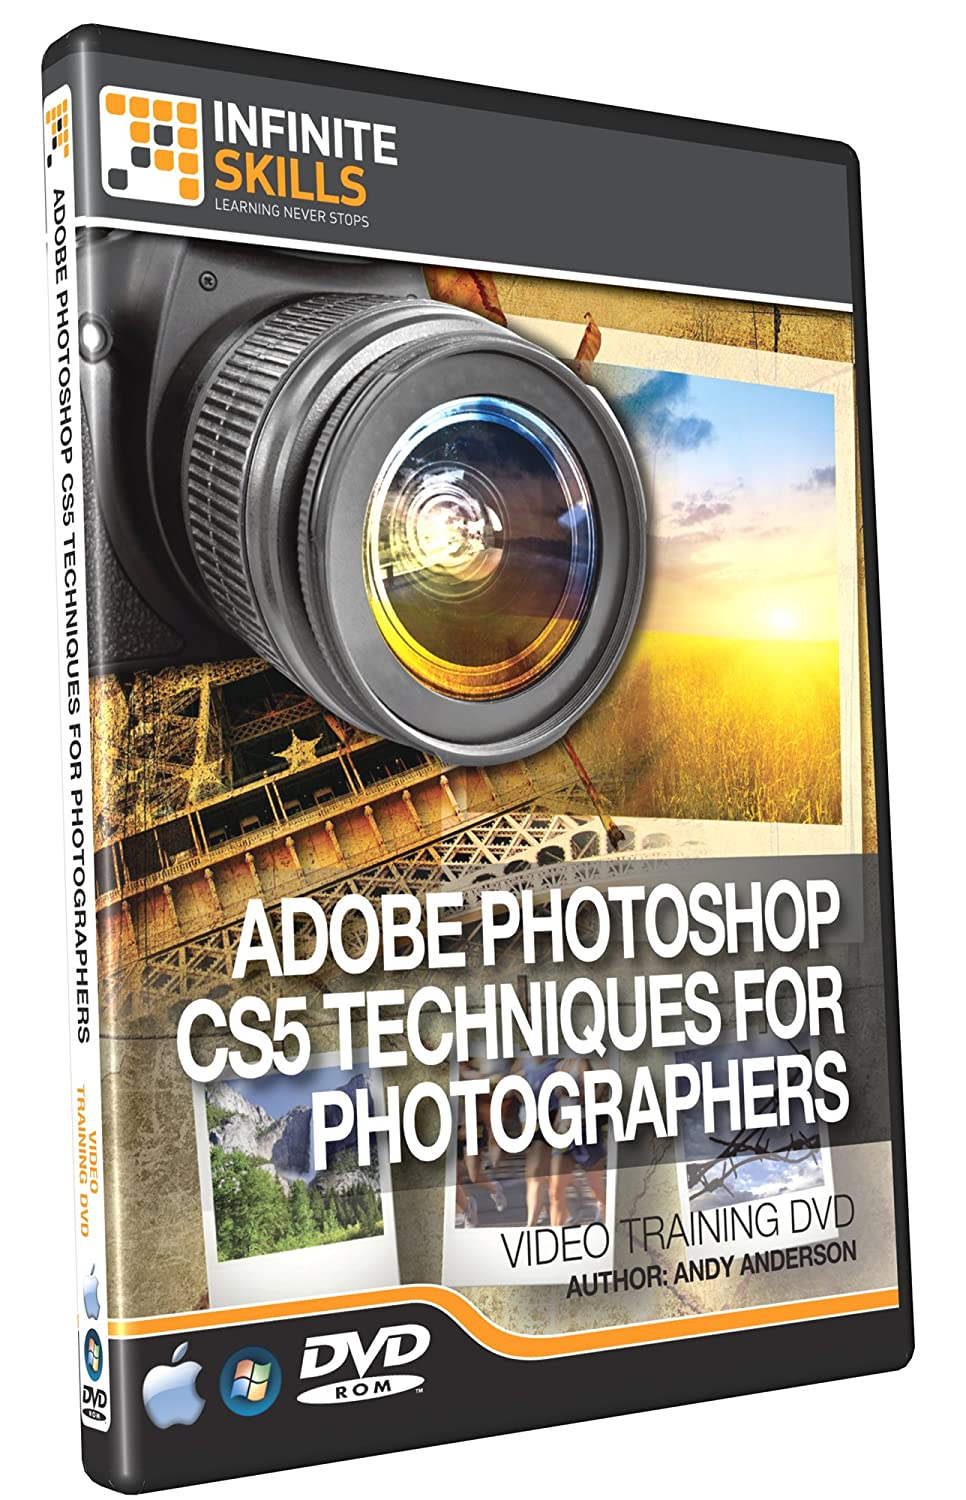 Amazon photographers photoshop tutorial video training dvd amazon photographers photoshop tutorial video training dvd cs4 and cs5 baditri Gallery